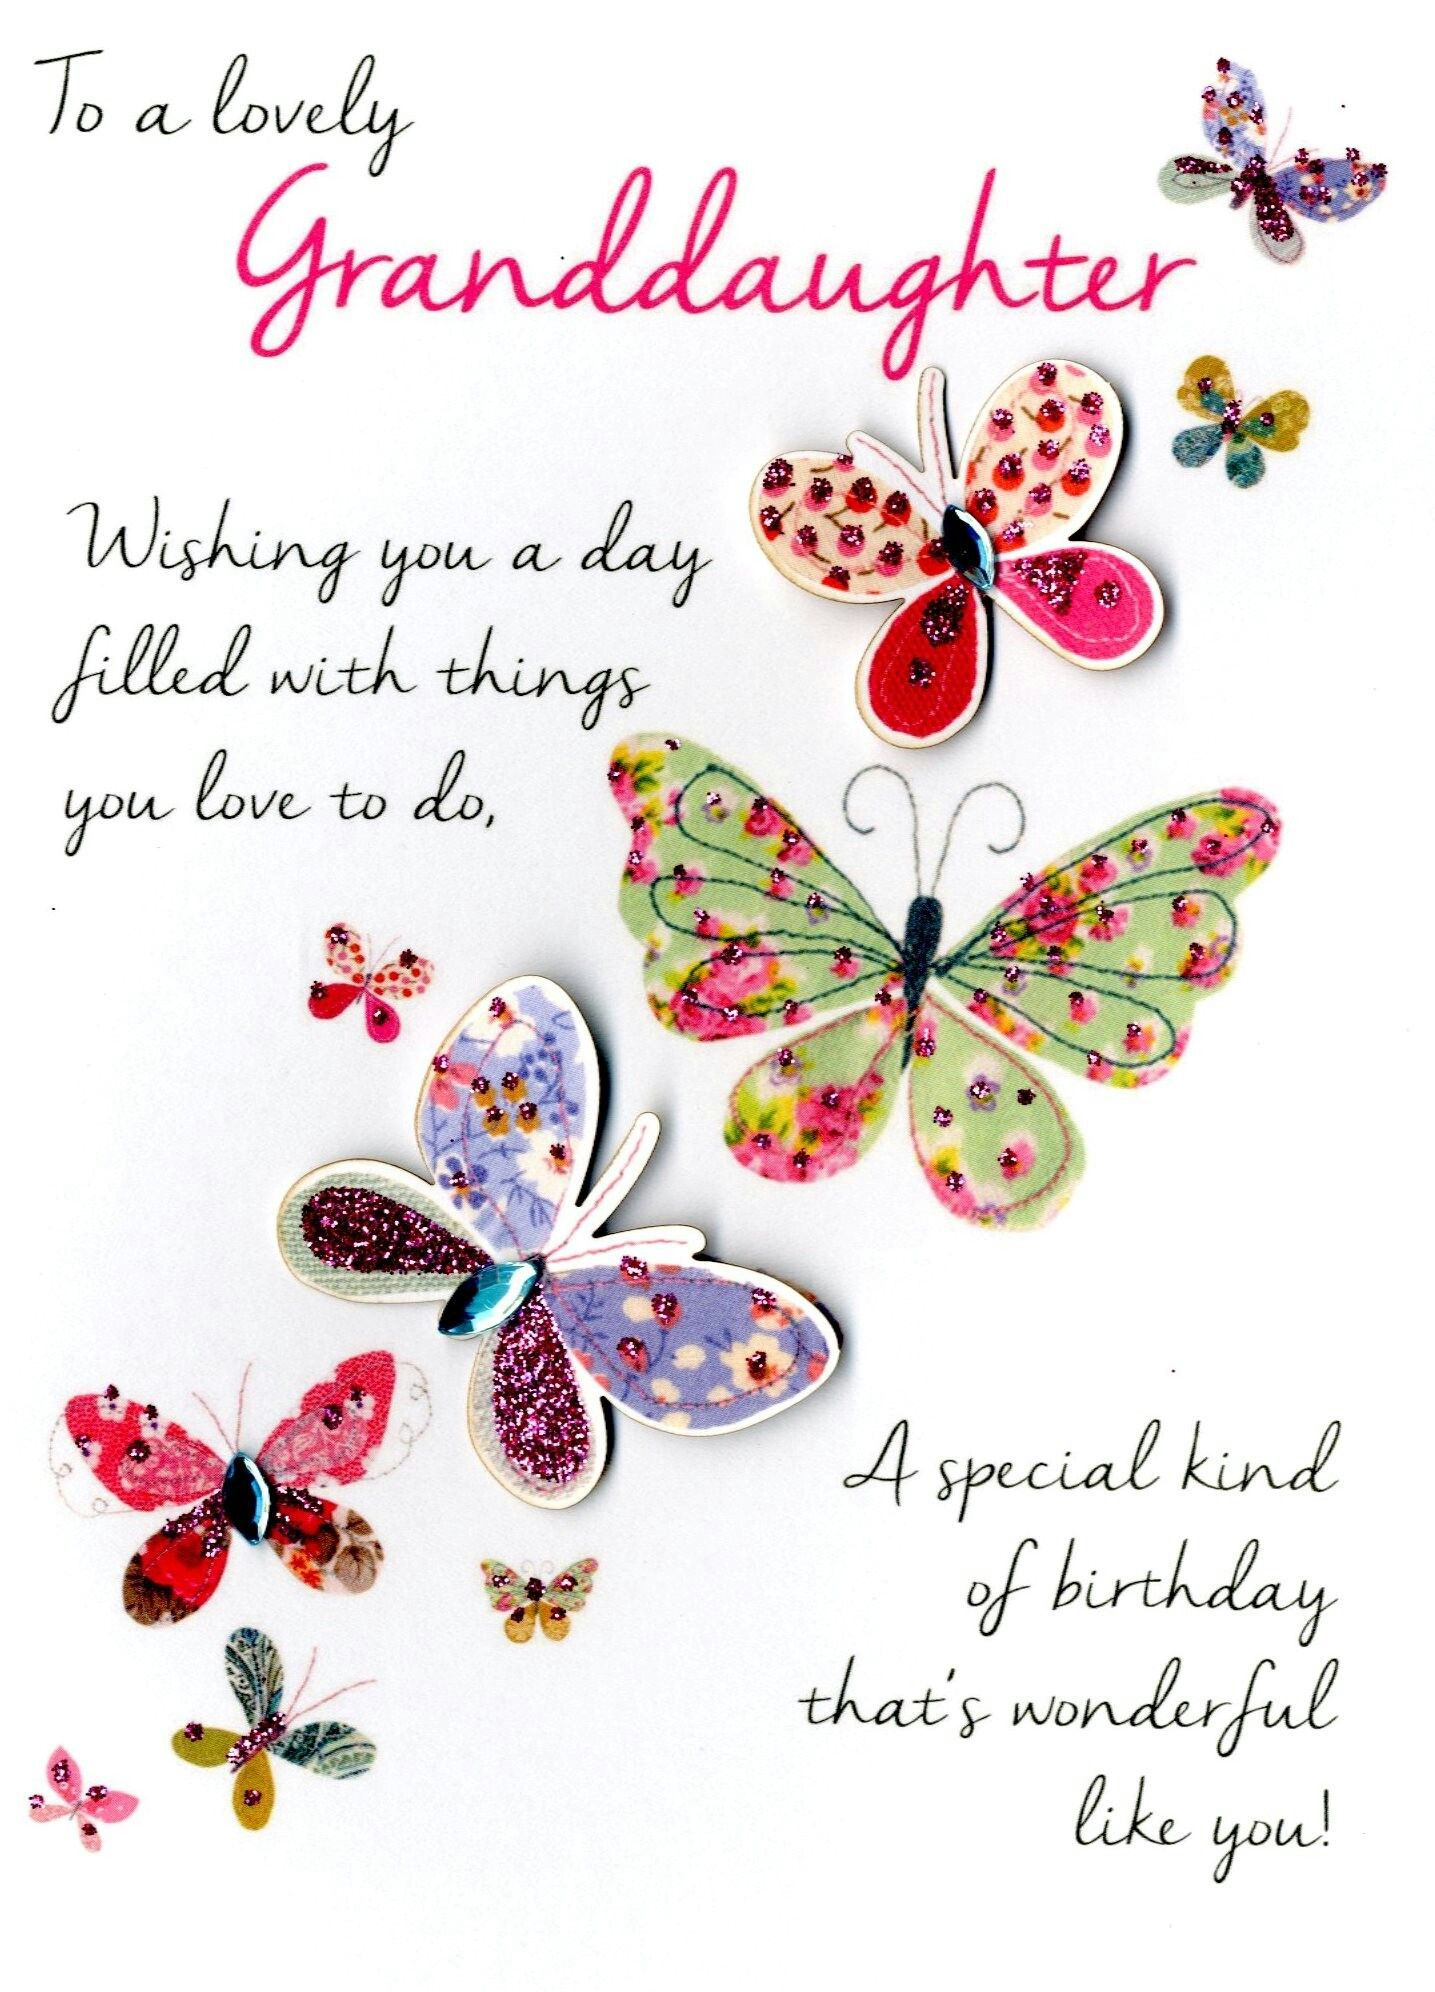 Lovely Granddaughter Birthday Greeting Card Grandaughter Birthday Wishes Granddaughter Birthday Happy Birthday Messages